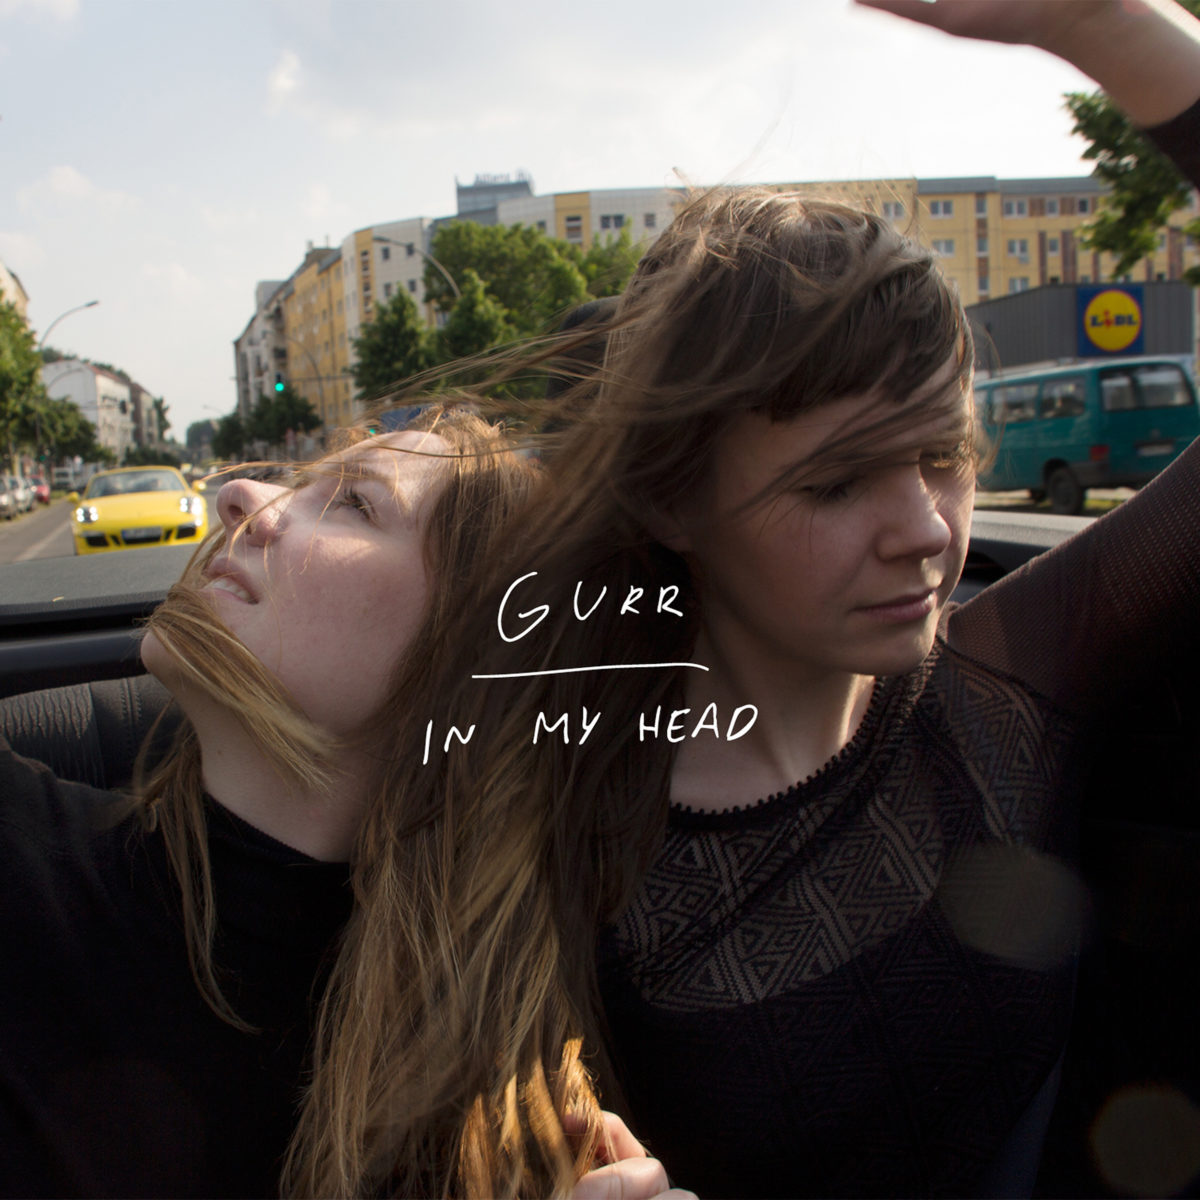 Gurr: In My Head (2016)